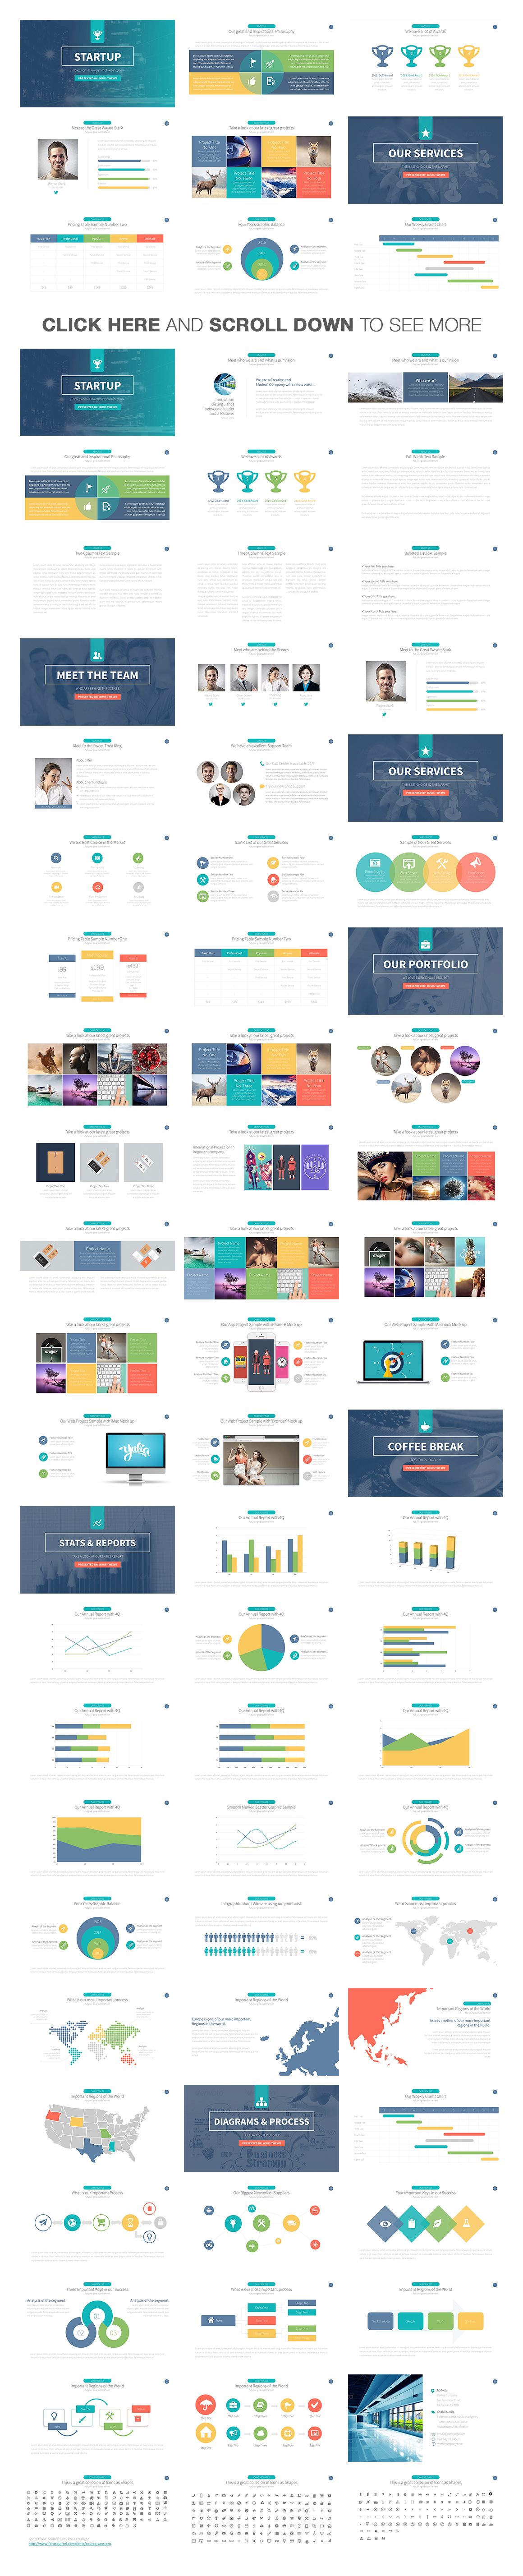 Startup powerpoint presentation template on behance startup powerpoint template is a new fresh modern clean professional ready to use creative and toneelgroepblik Images